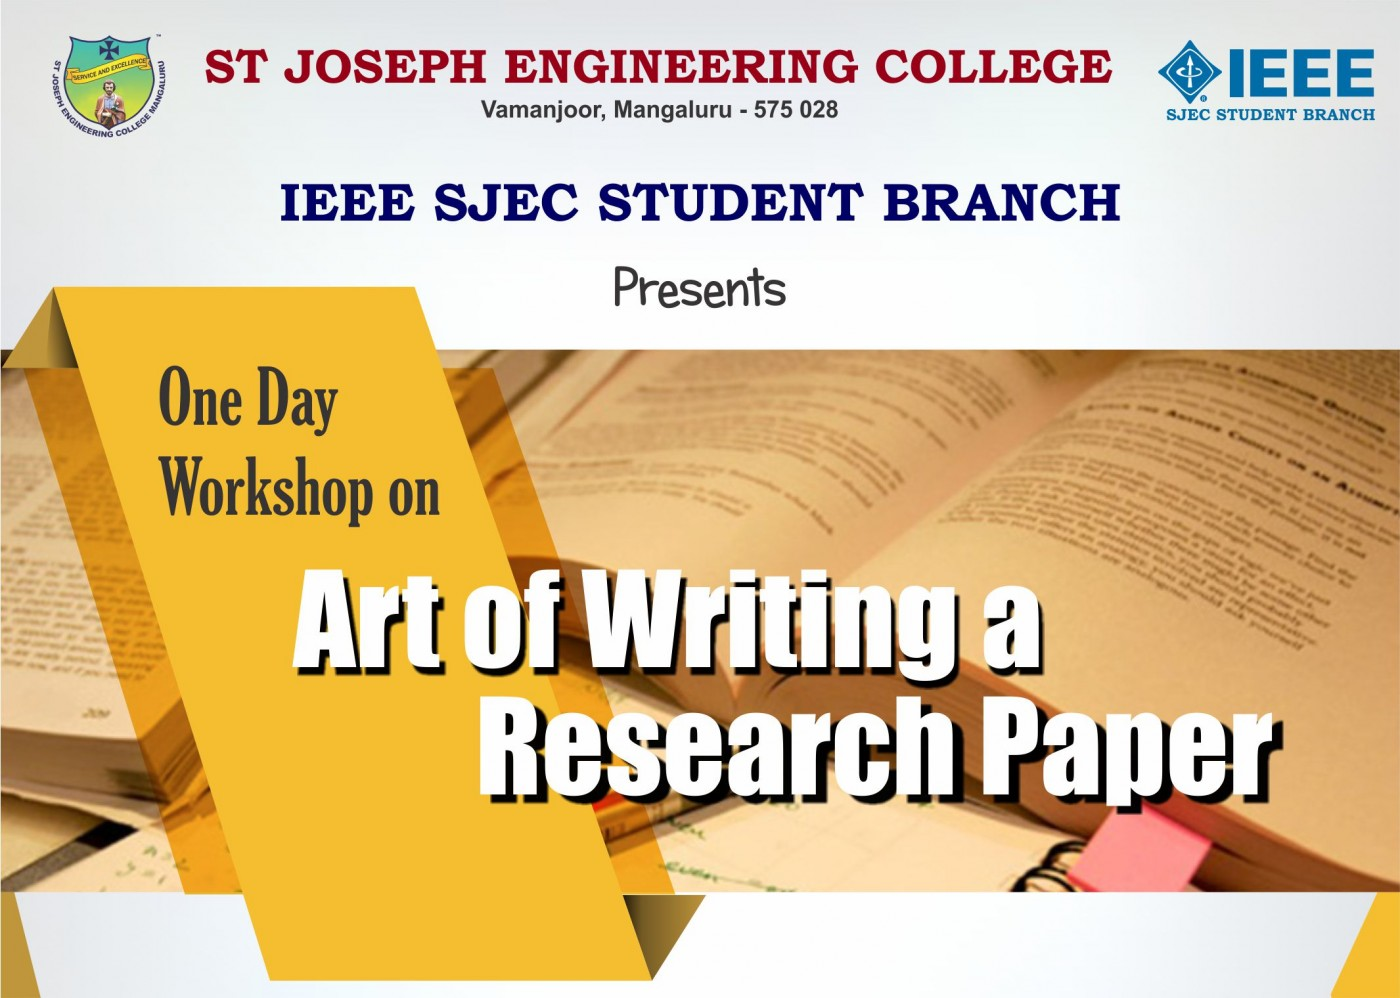 016 Writting Research Paper Workshop Dreaded A Writing In Political Science 3rd Edition Example Of Proposal Outline 1400